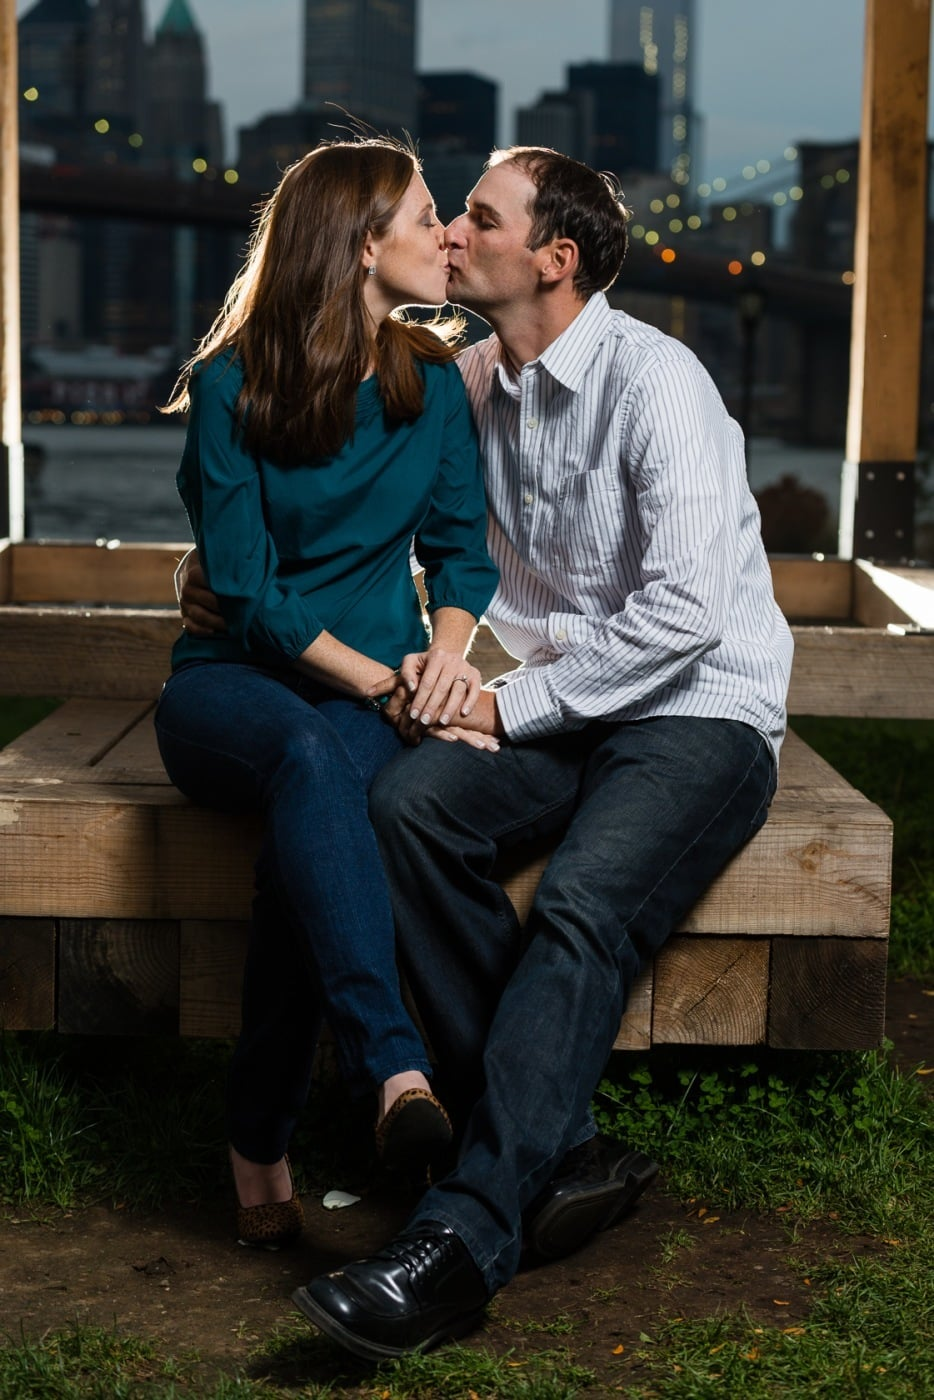 Engagement Photographs & Getting Creative With Lighting